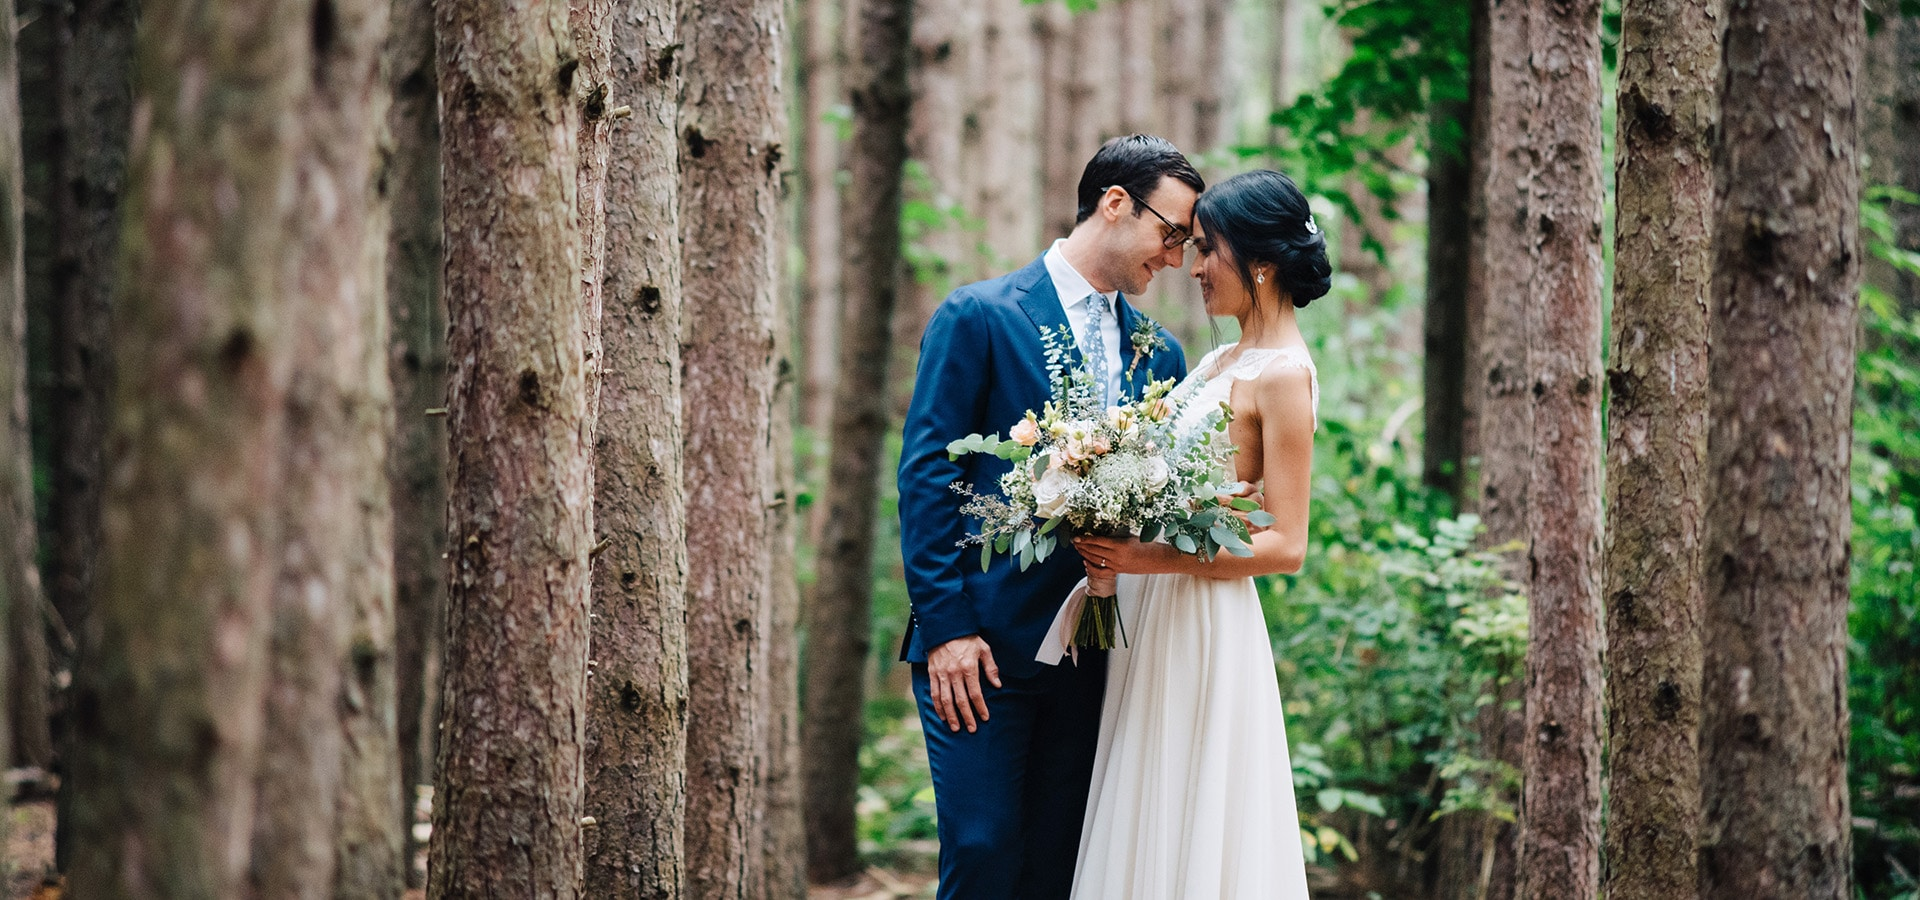 Hero image for Linda and Jim's Rainy Day Wedding at Kortright Event Centre for Conservation